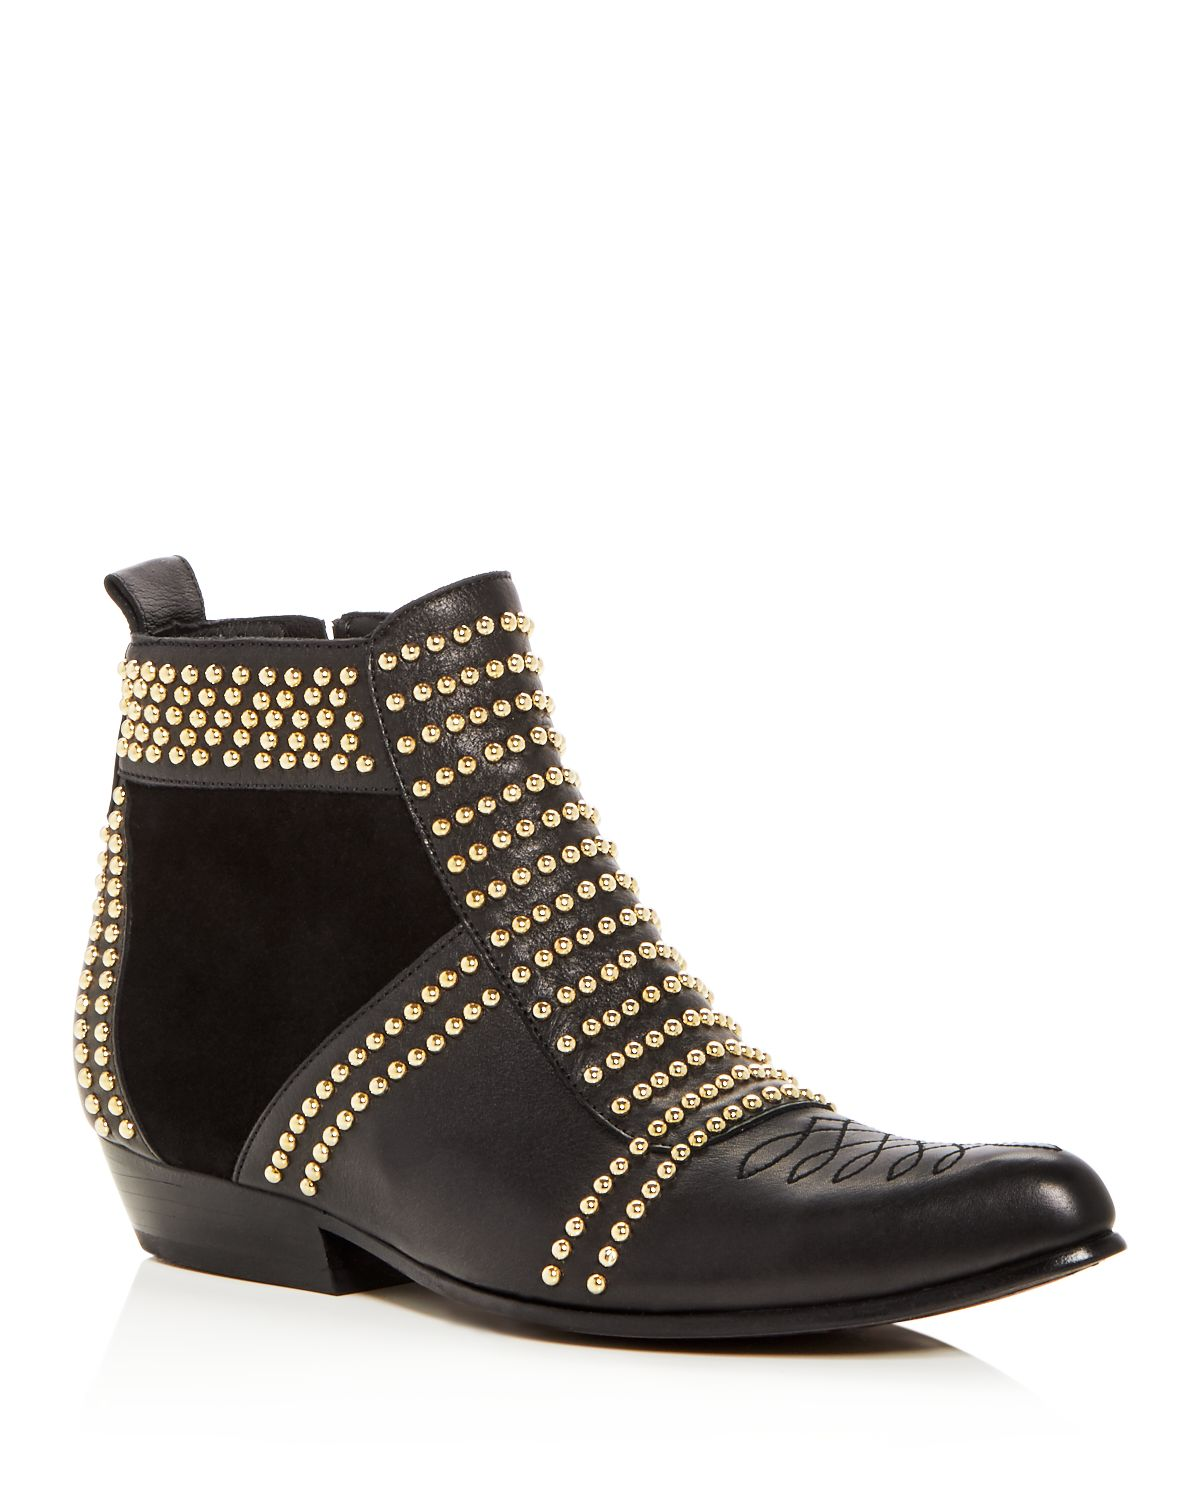 Women's Charlie Studded Leather & Suede Booties by Anine Bing